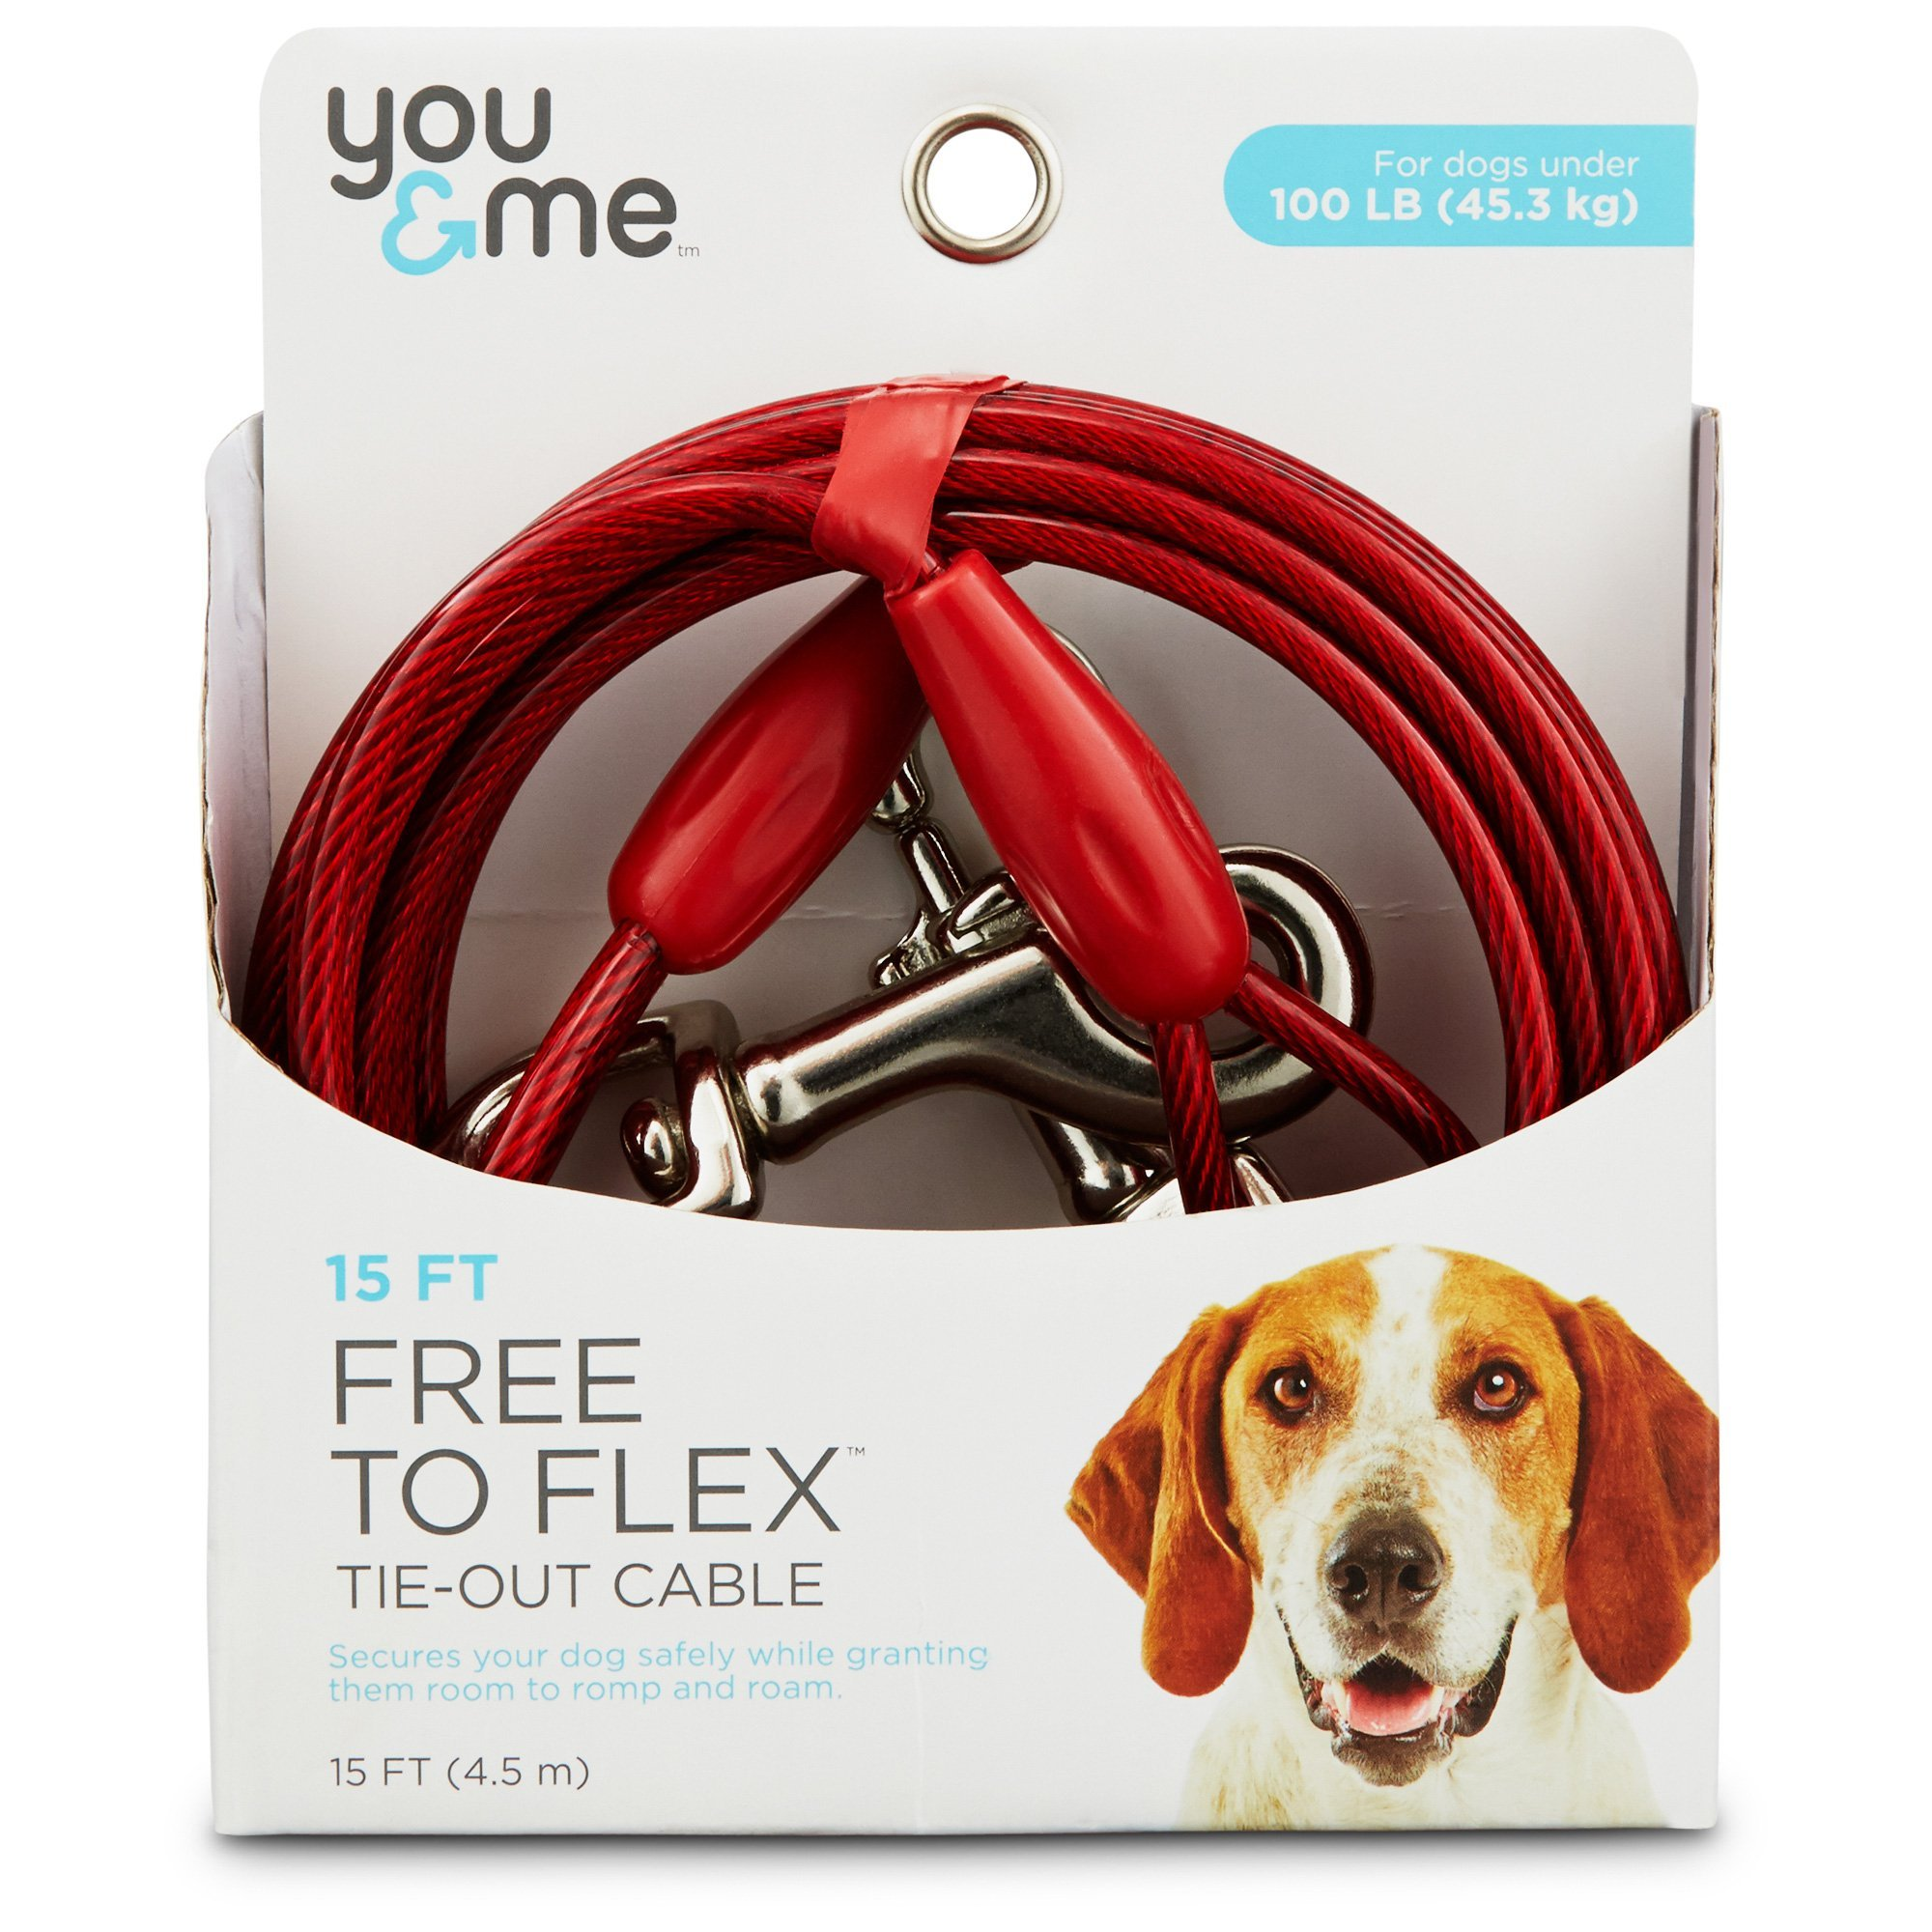 You & Me Red Large Free to Flex Dog Tie-Out Cable, 40' L, For Dogs up to 100 Lbs.